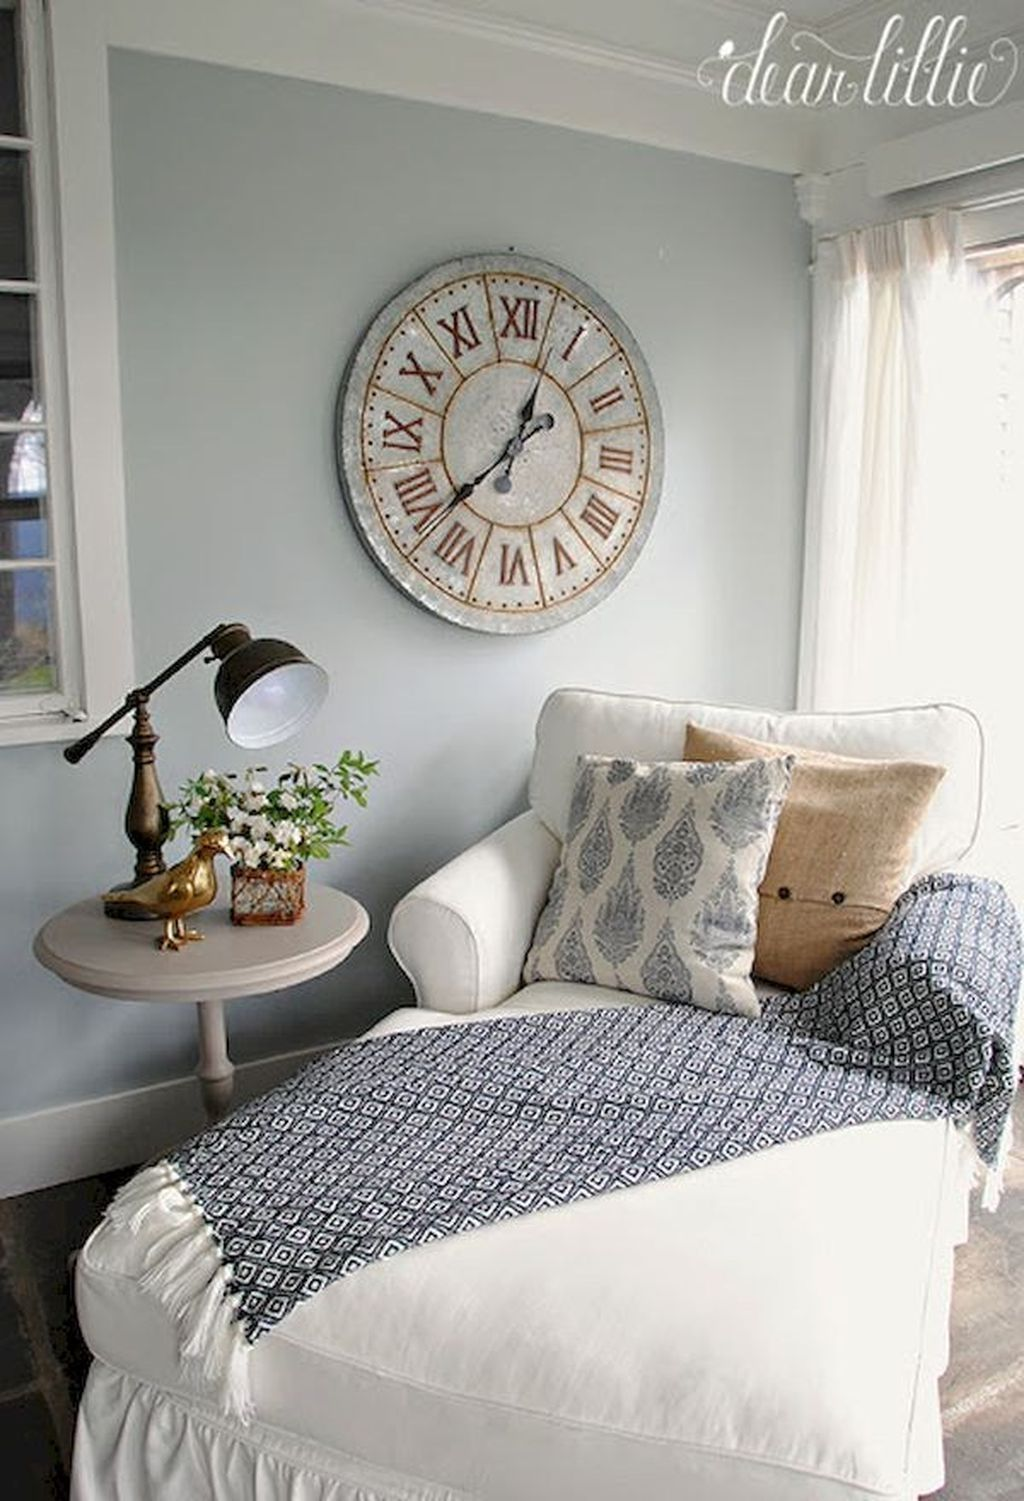 French Bedroom Design New Cool 99 Totally Adorable French Bedroom Decoration Ideasmore At Inspiration Design